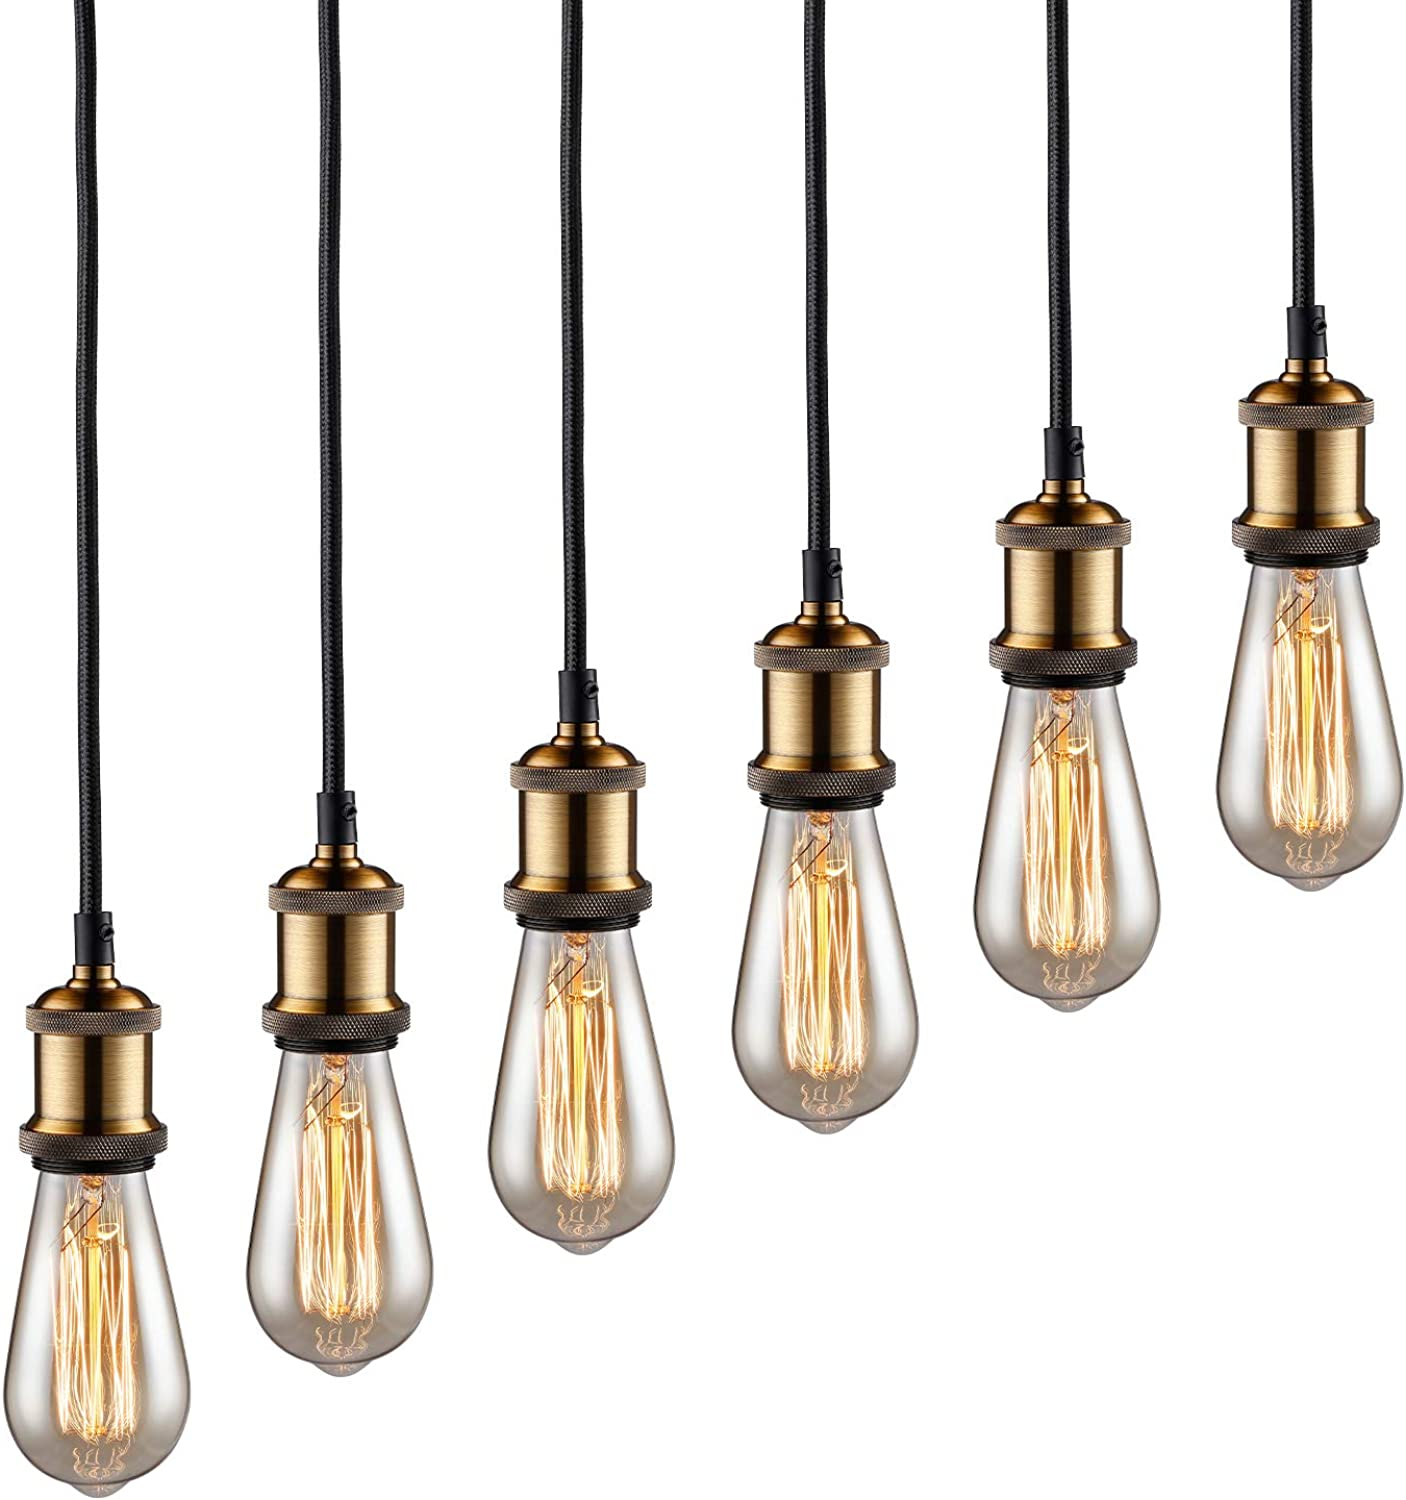 TORCHSTAR Pendant Light Fixture, 3.28ft Adjustable Lamp Cord, UL-Listed Power Cord, Decorating for Living Room, Coffee Shop, Western Stylish Place, 2-Year Warranty, Bronze, Pack of 6